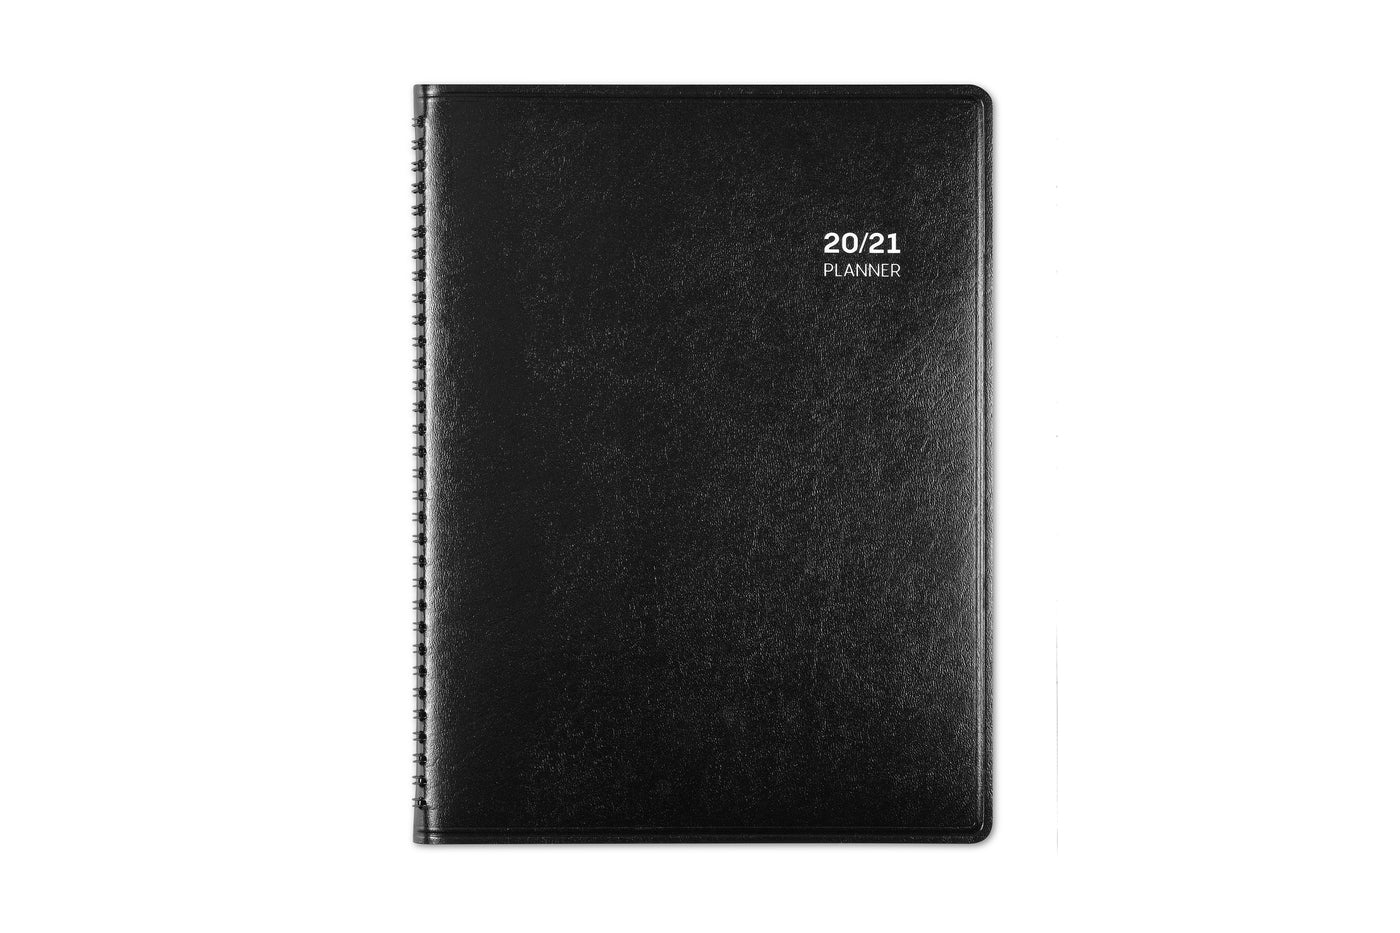 Blue Sky's PAJCO appointment book in 8.5x11 size with a solid black, flexible, and durable cover